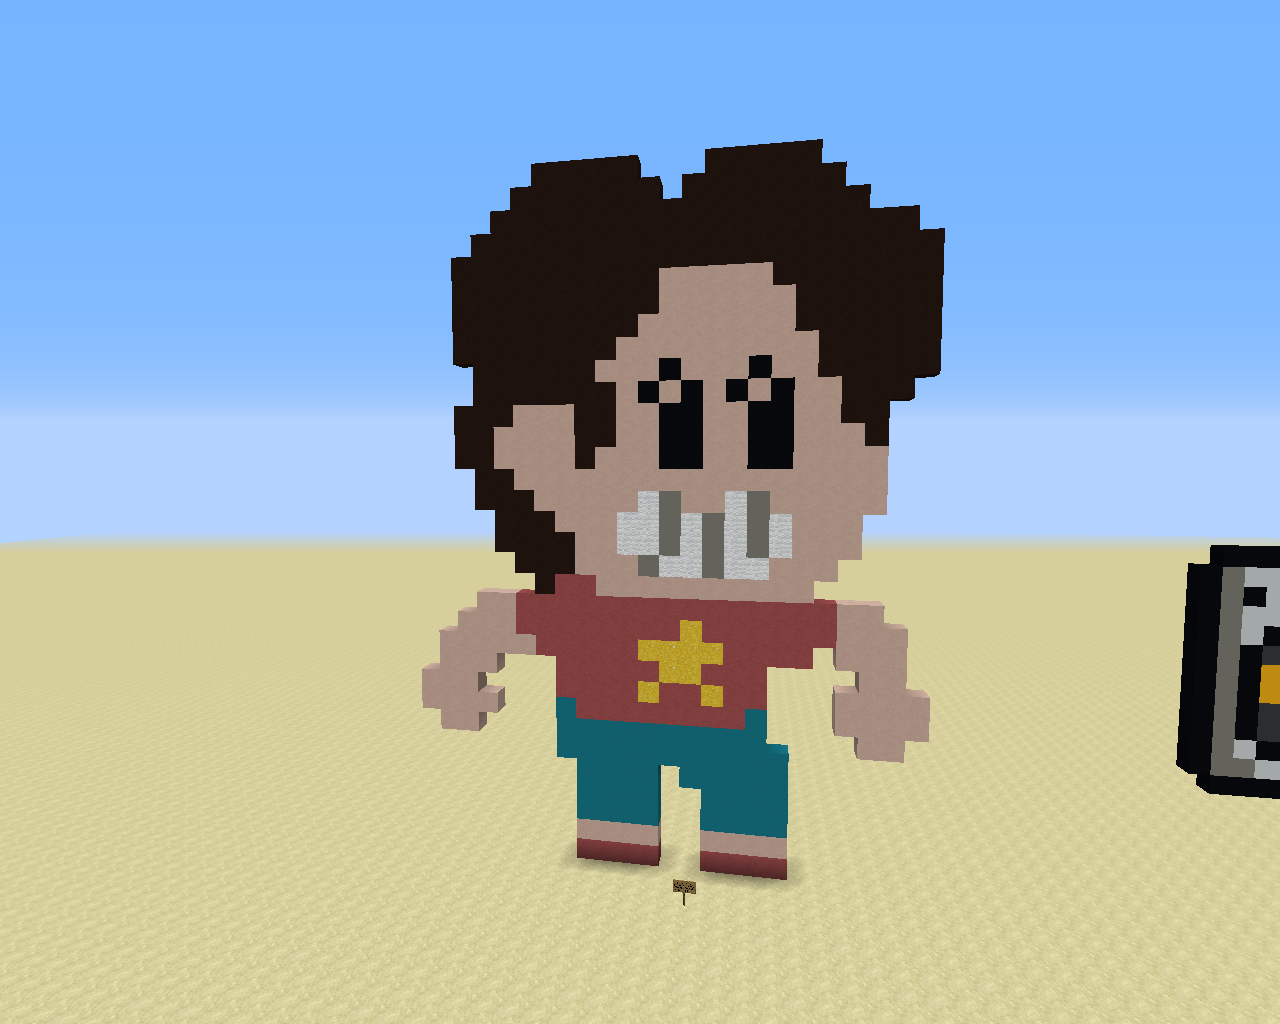 A custom sprite of Steven Universe, inspired by his sprite from Save The Light.